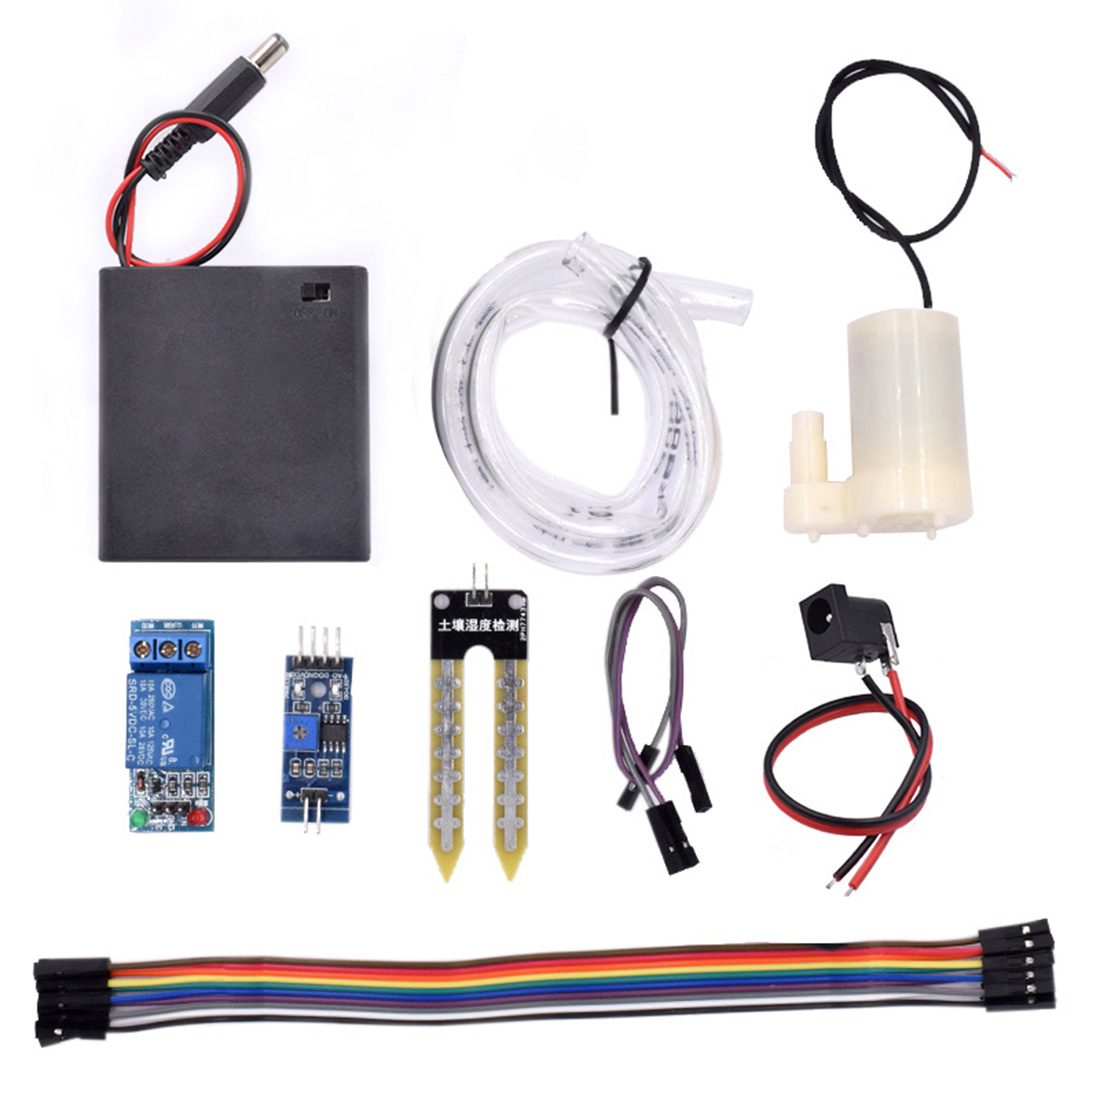 Water Pump Automatic Irrigation Module DIY Kit Soil Moisture Detection Automatically Watering